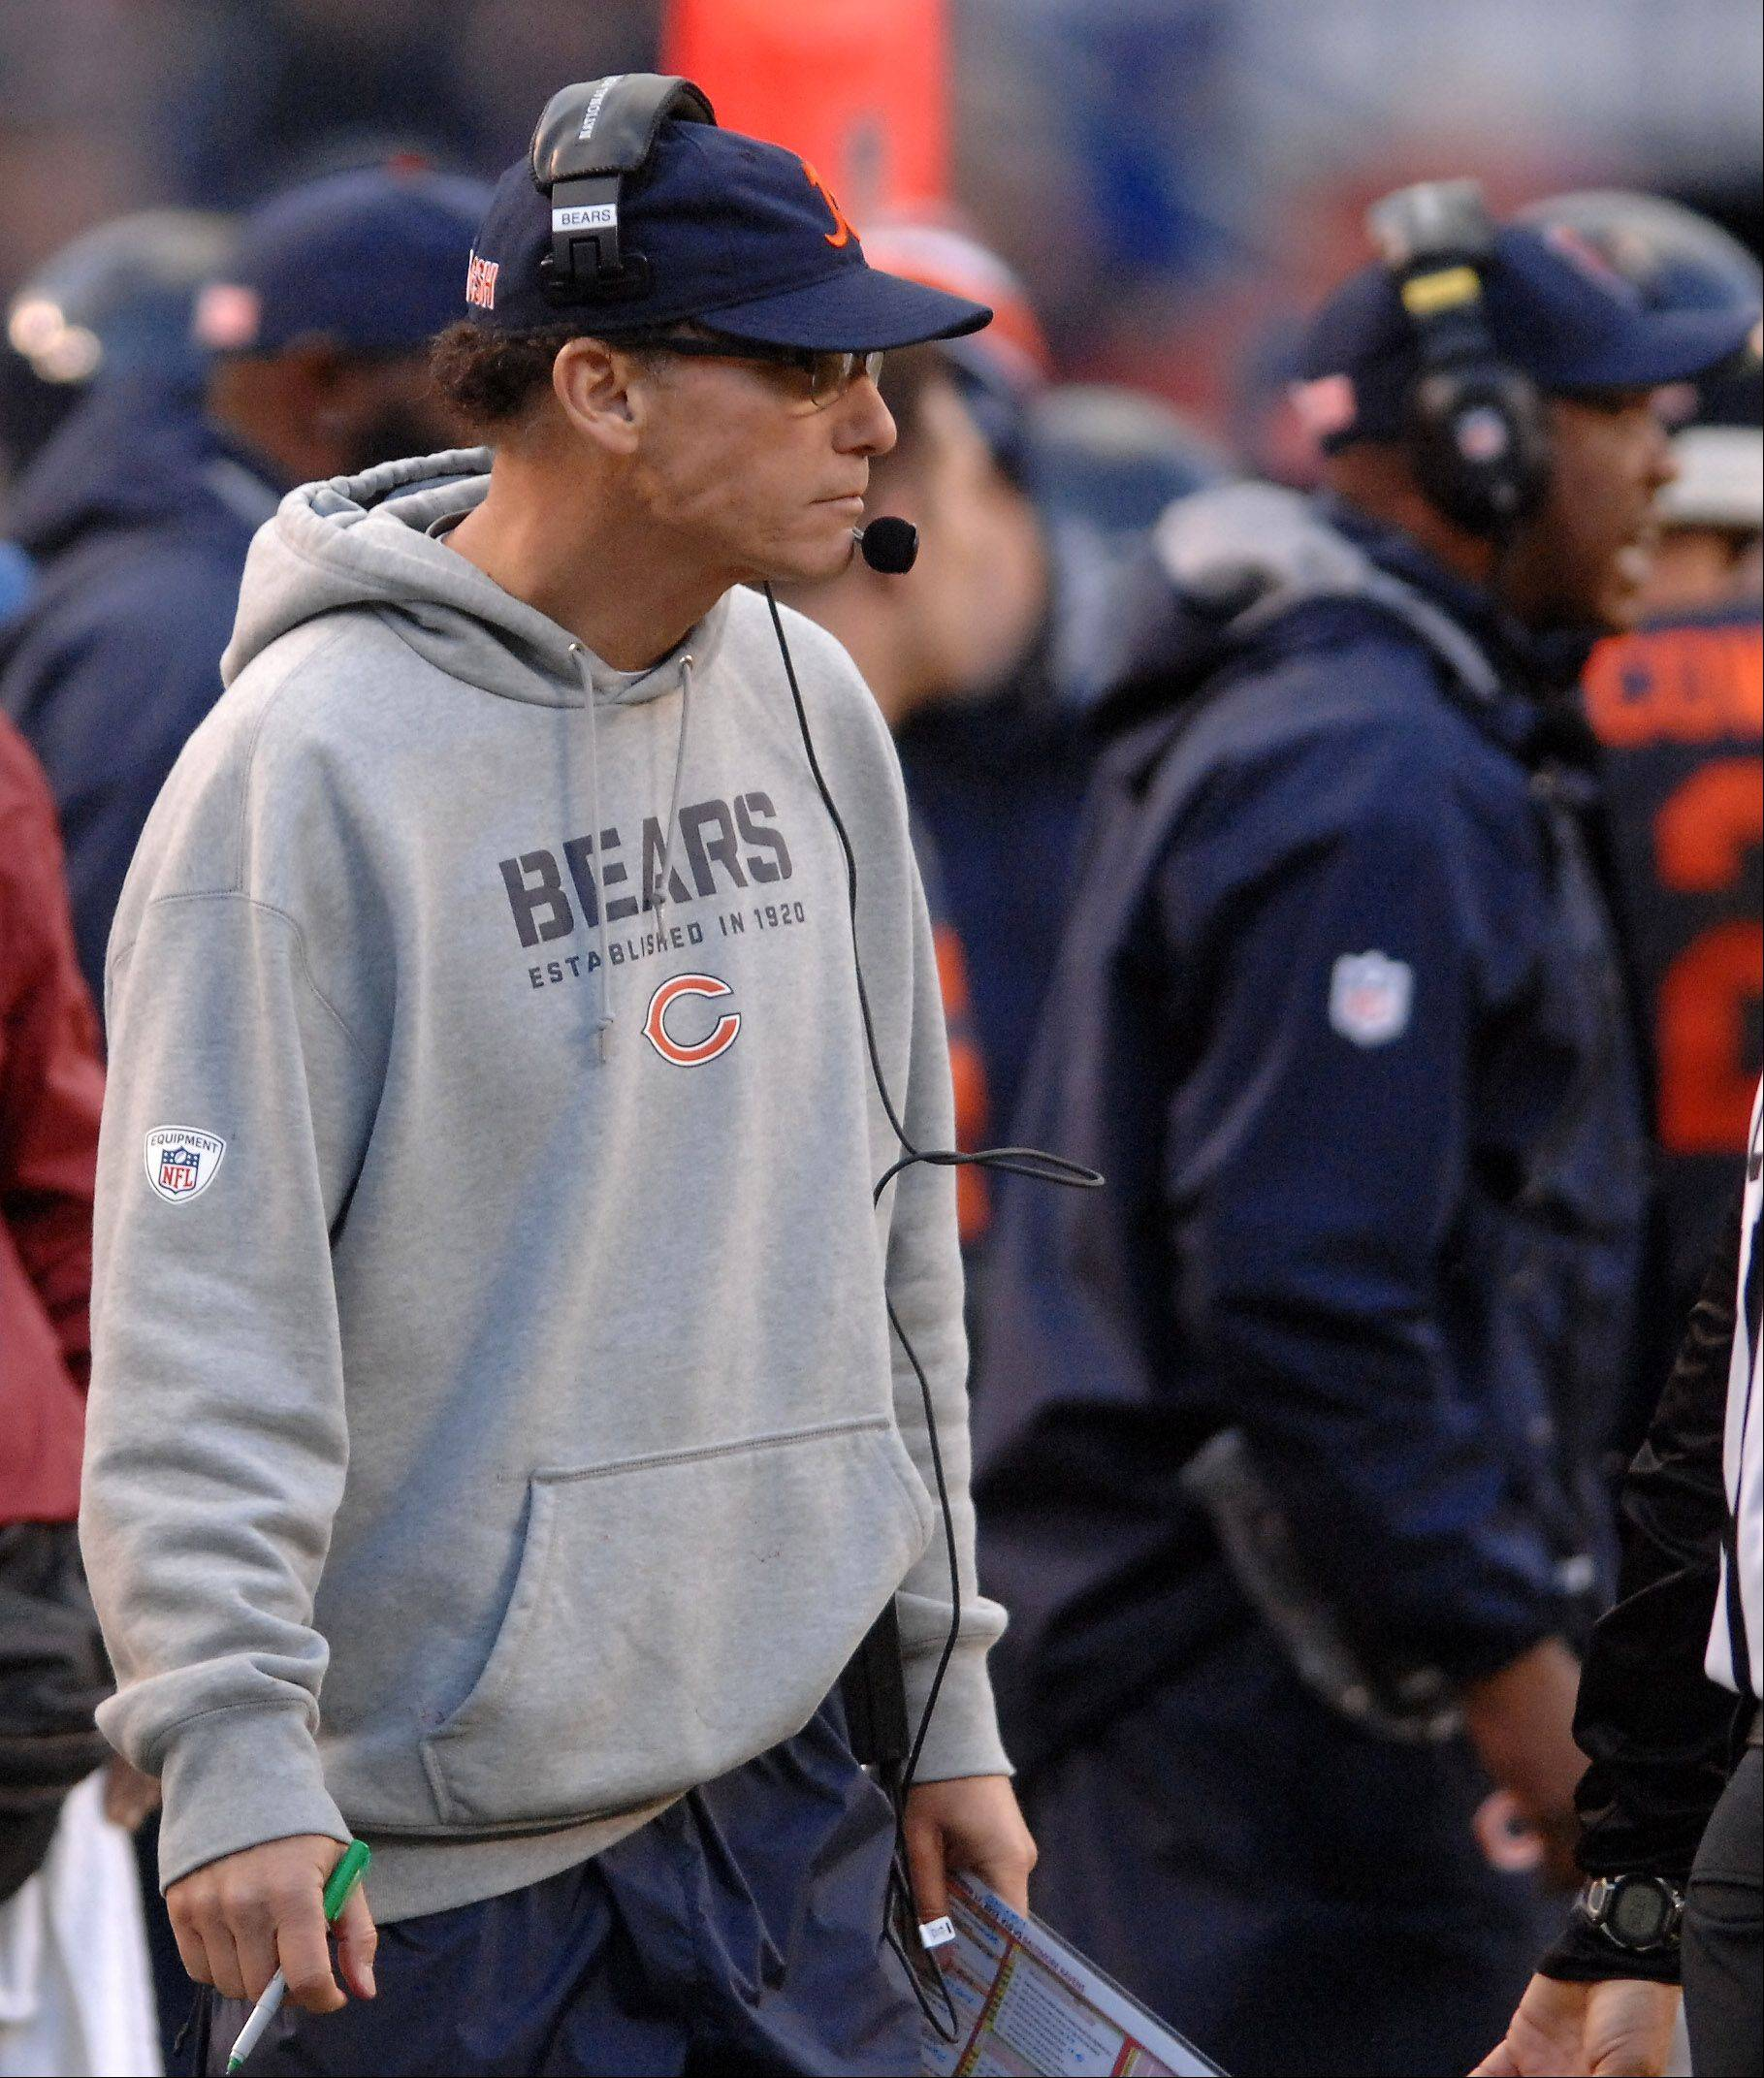 Bears head coach Marc Trestman watches the second-quarter action during Sunday's game in Chicago.